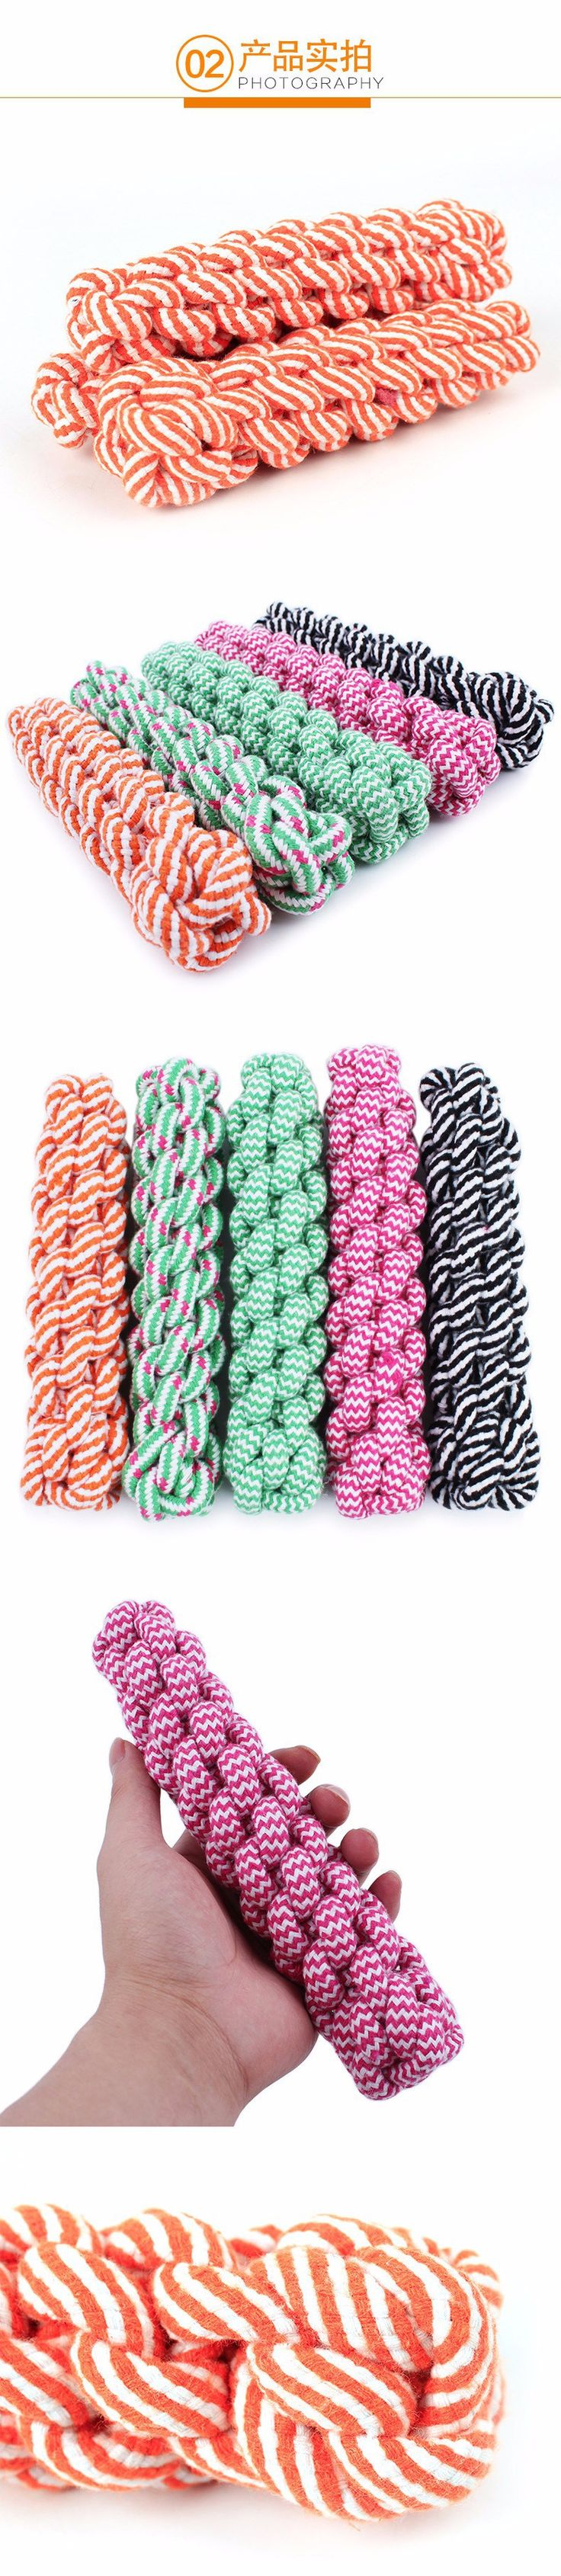 petcircle new arrivals knot hemp flowers pet dog toys durable flying discs knot dog toy for small and large dogs dog  toys | The Cannabis Patient Shop